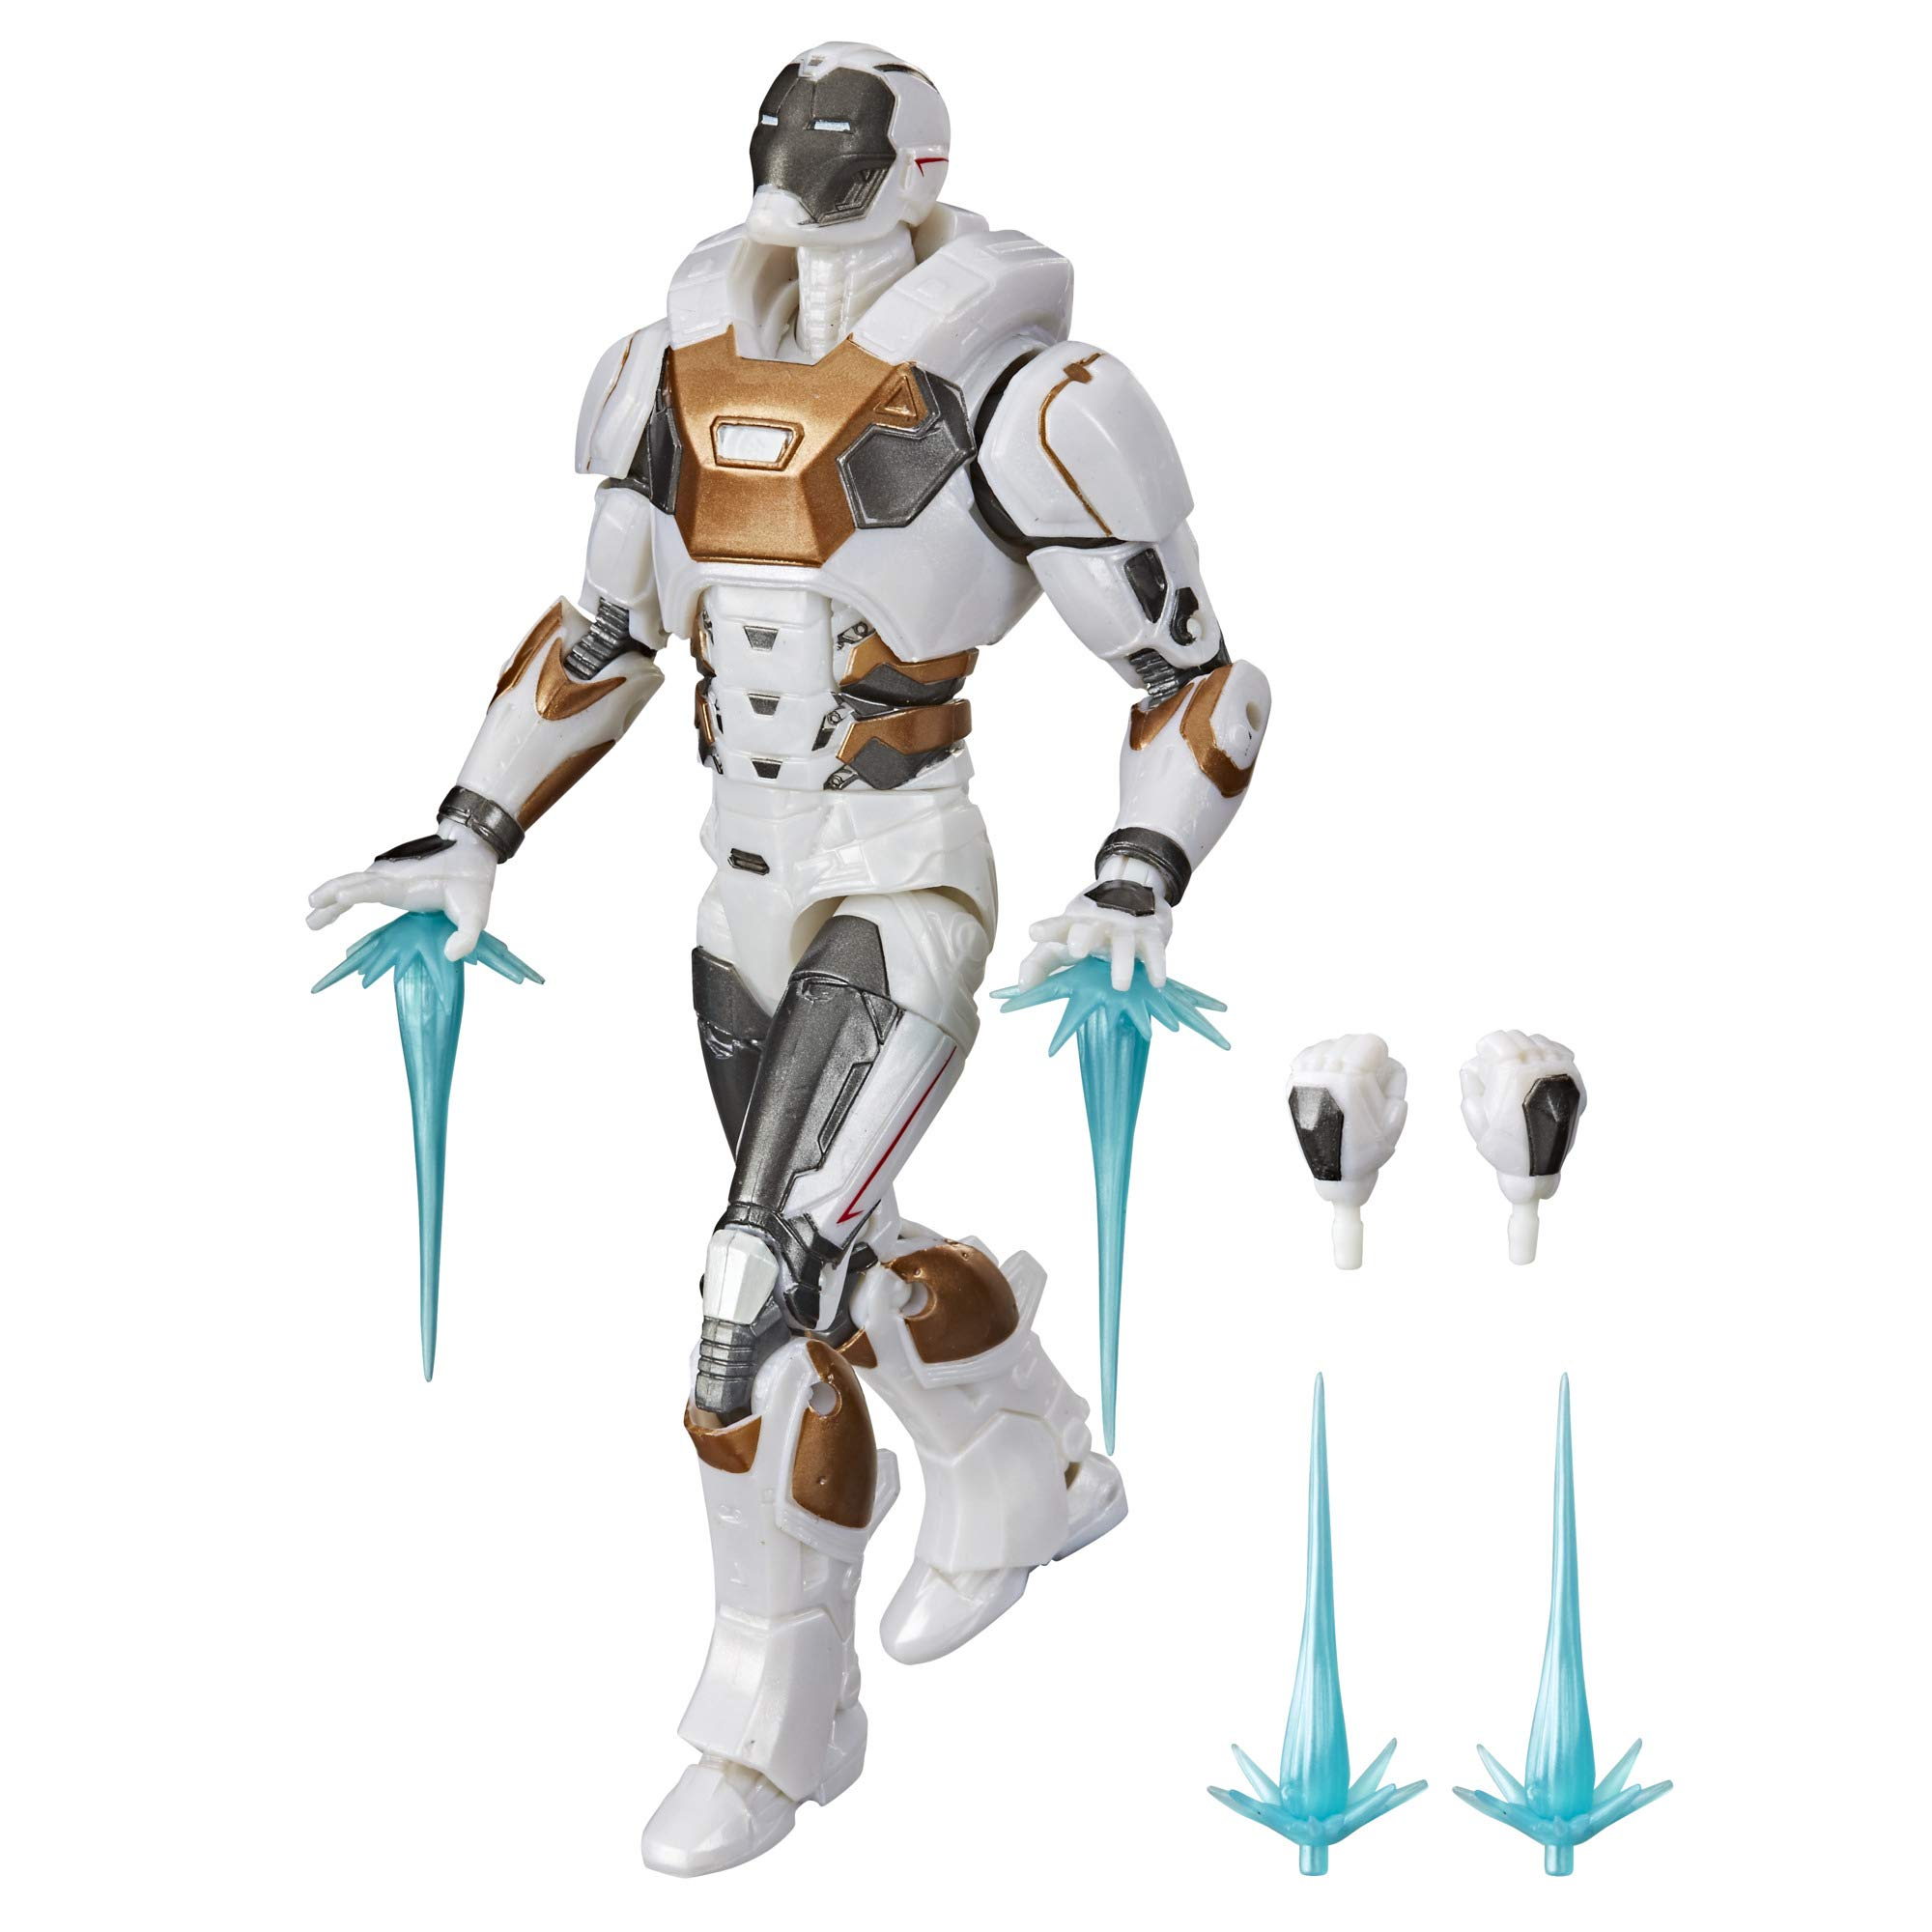 MARVEL Hasbro Legends Series 6-inch Collectible Action Figure Toy Gamerverse Avengers Starboost Armor Iron Man, 6 Accessories